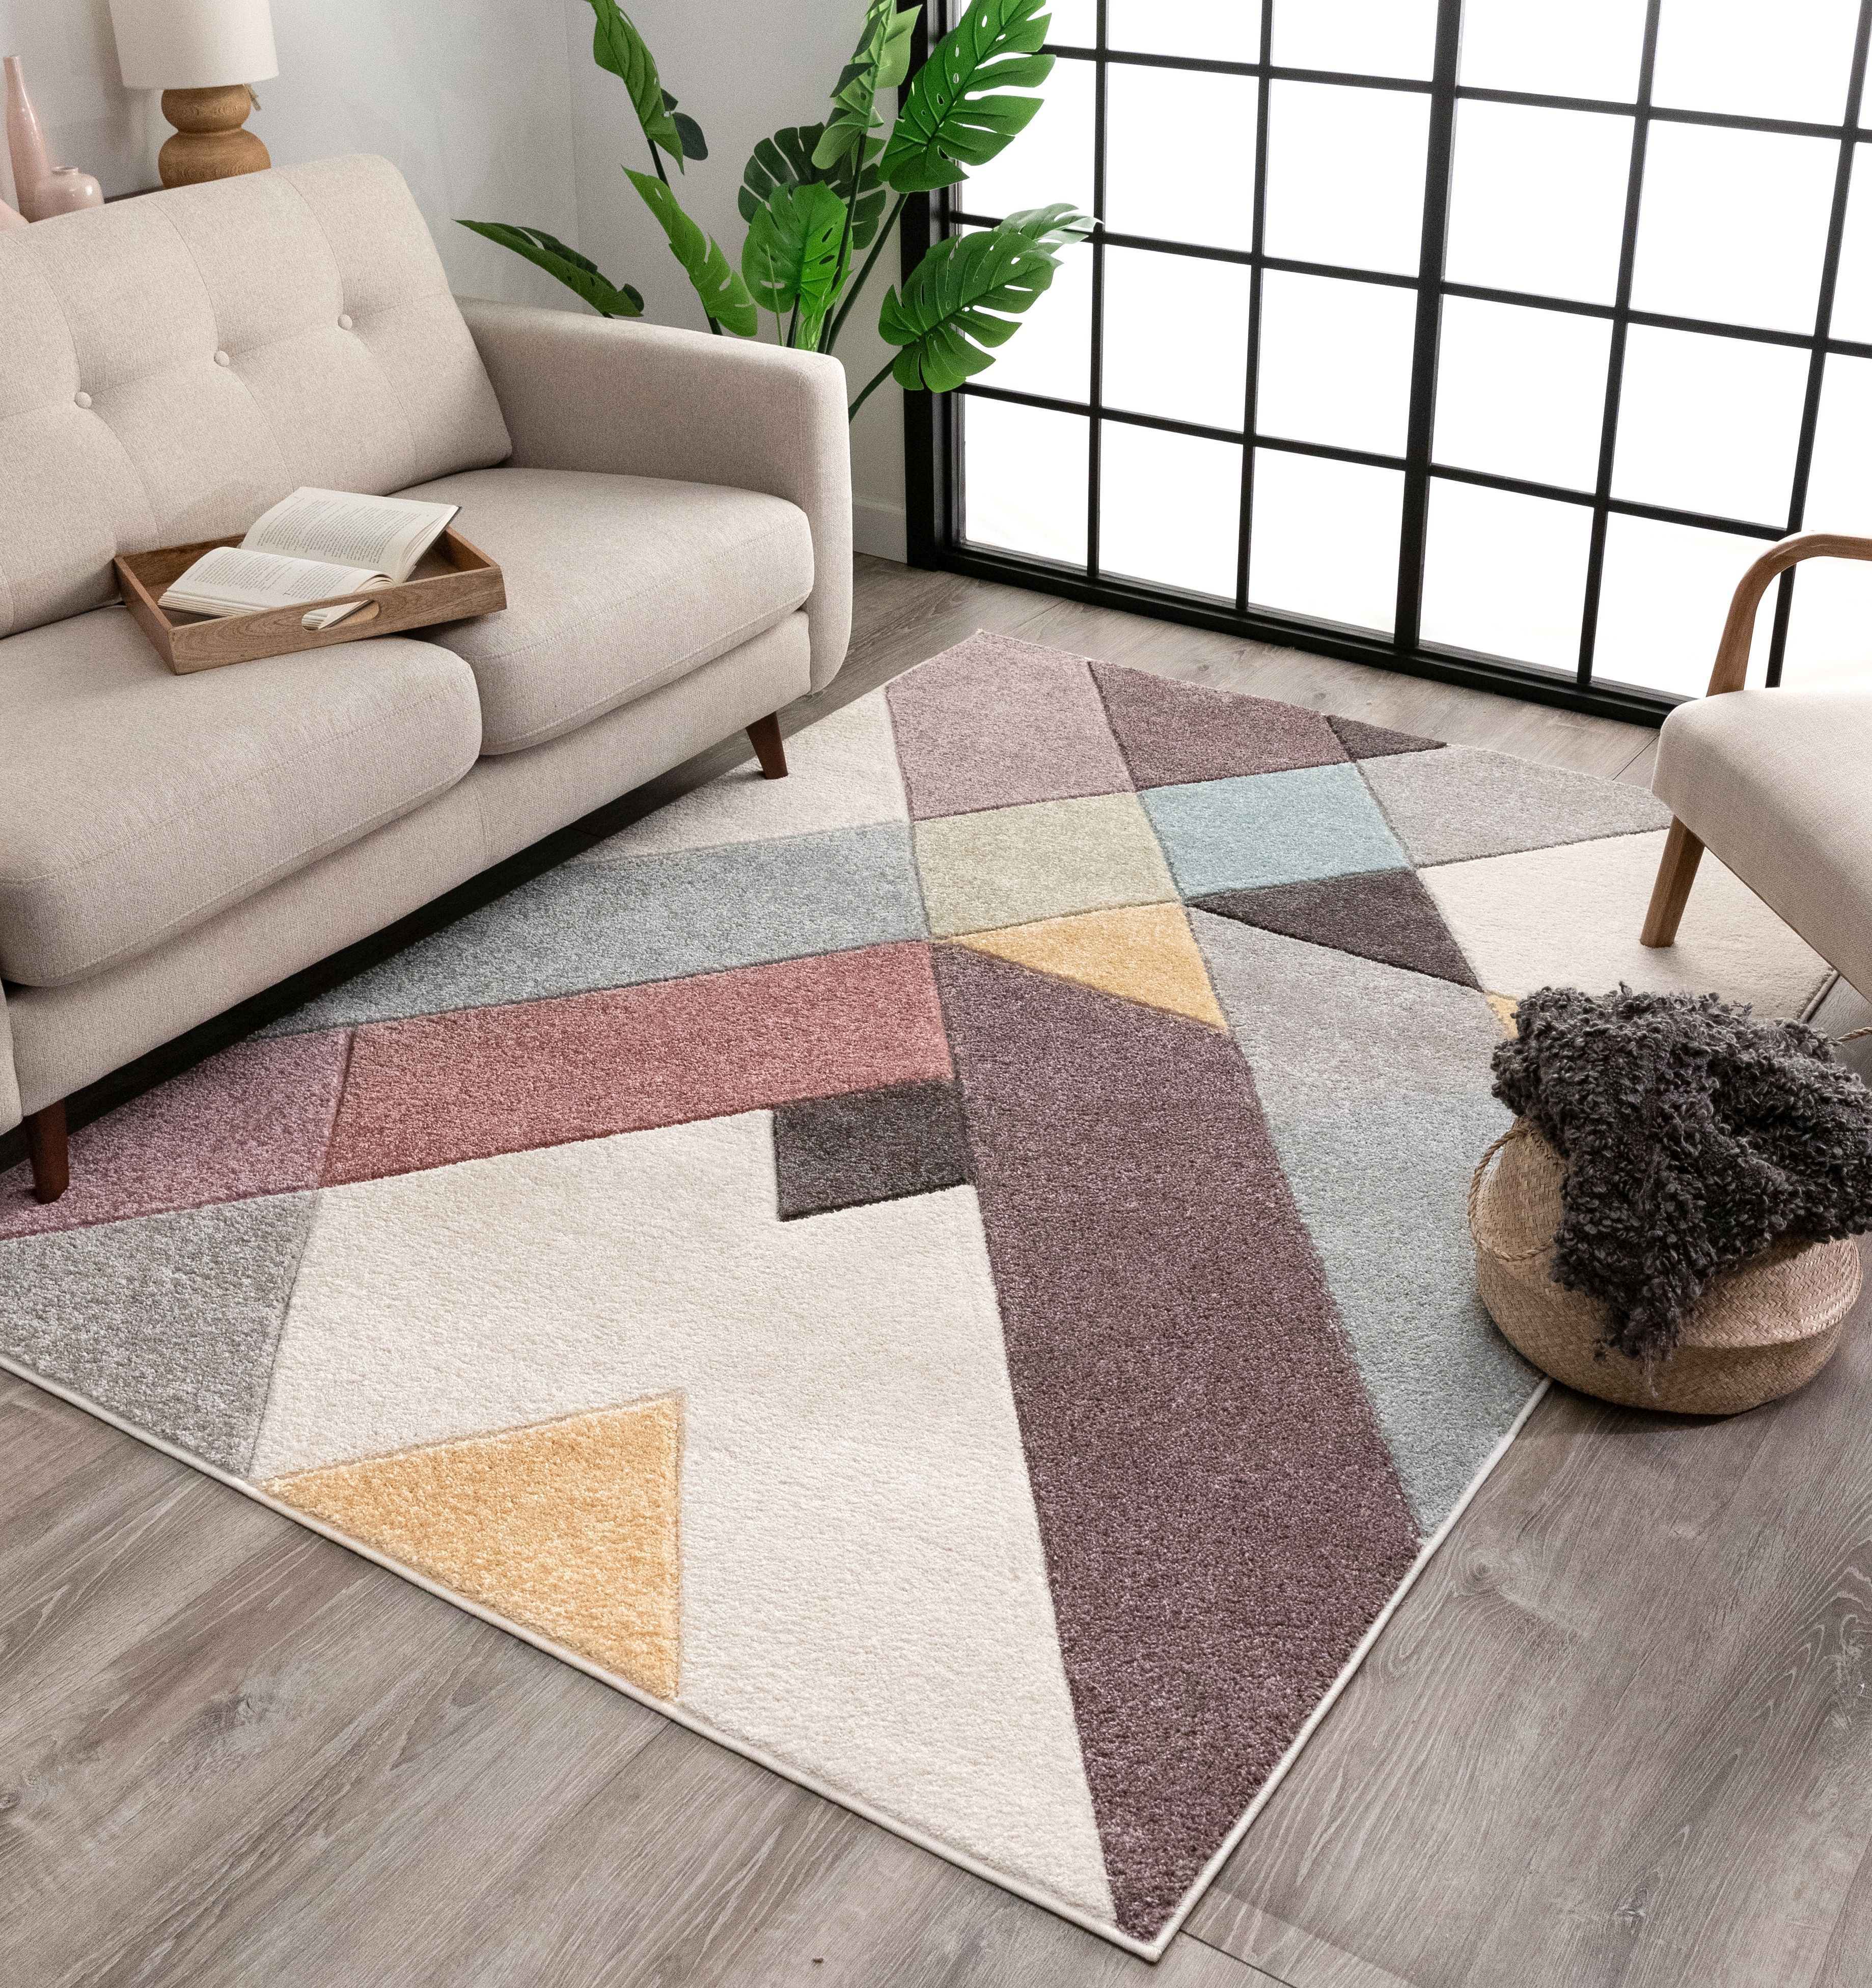 Well Woven Canna Soft Pastel Multi Color Triangle Boxes Squares Geometric Area Rug Well Woven Geometric Area Rug Area Rugs Center carpet for living room